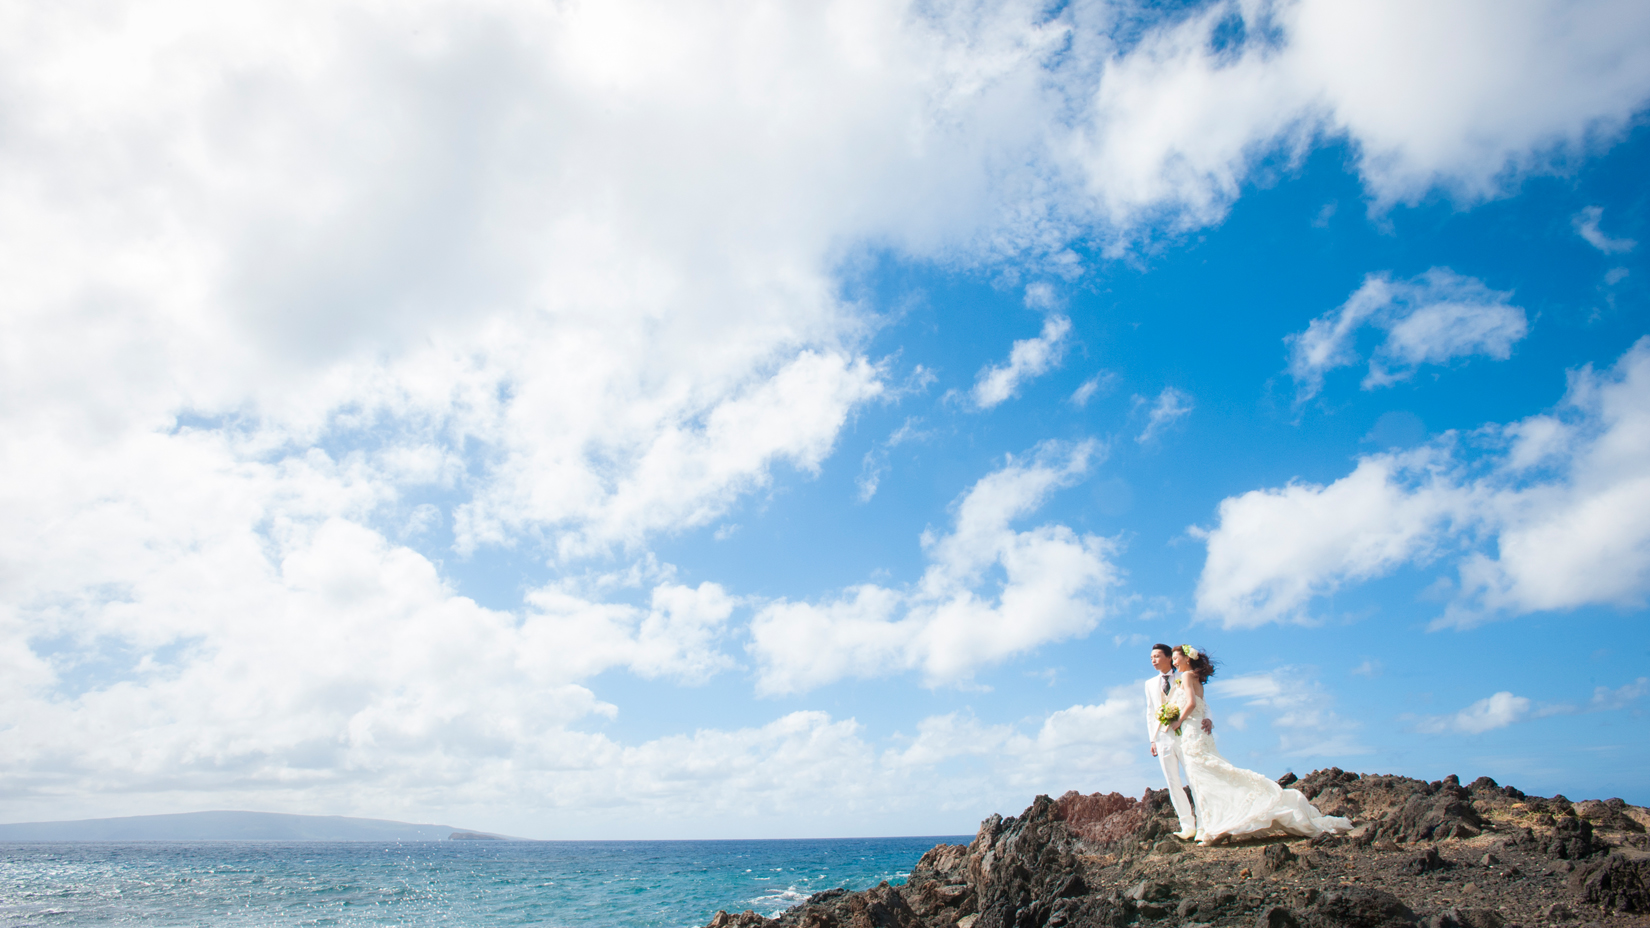 Maui Hawaii Beach Wedding Photographer, マウイカメラマン、写真家、Maui Photography, フォト婚